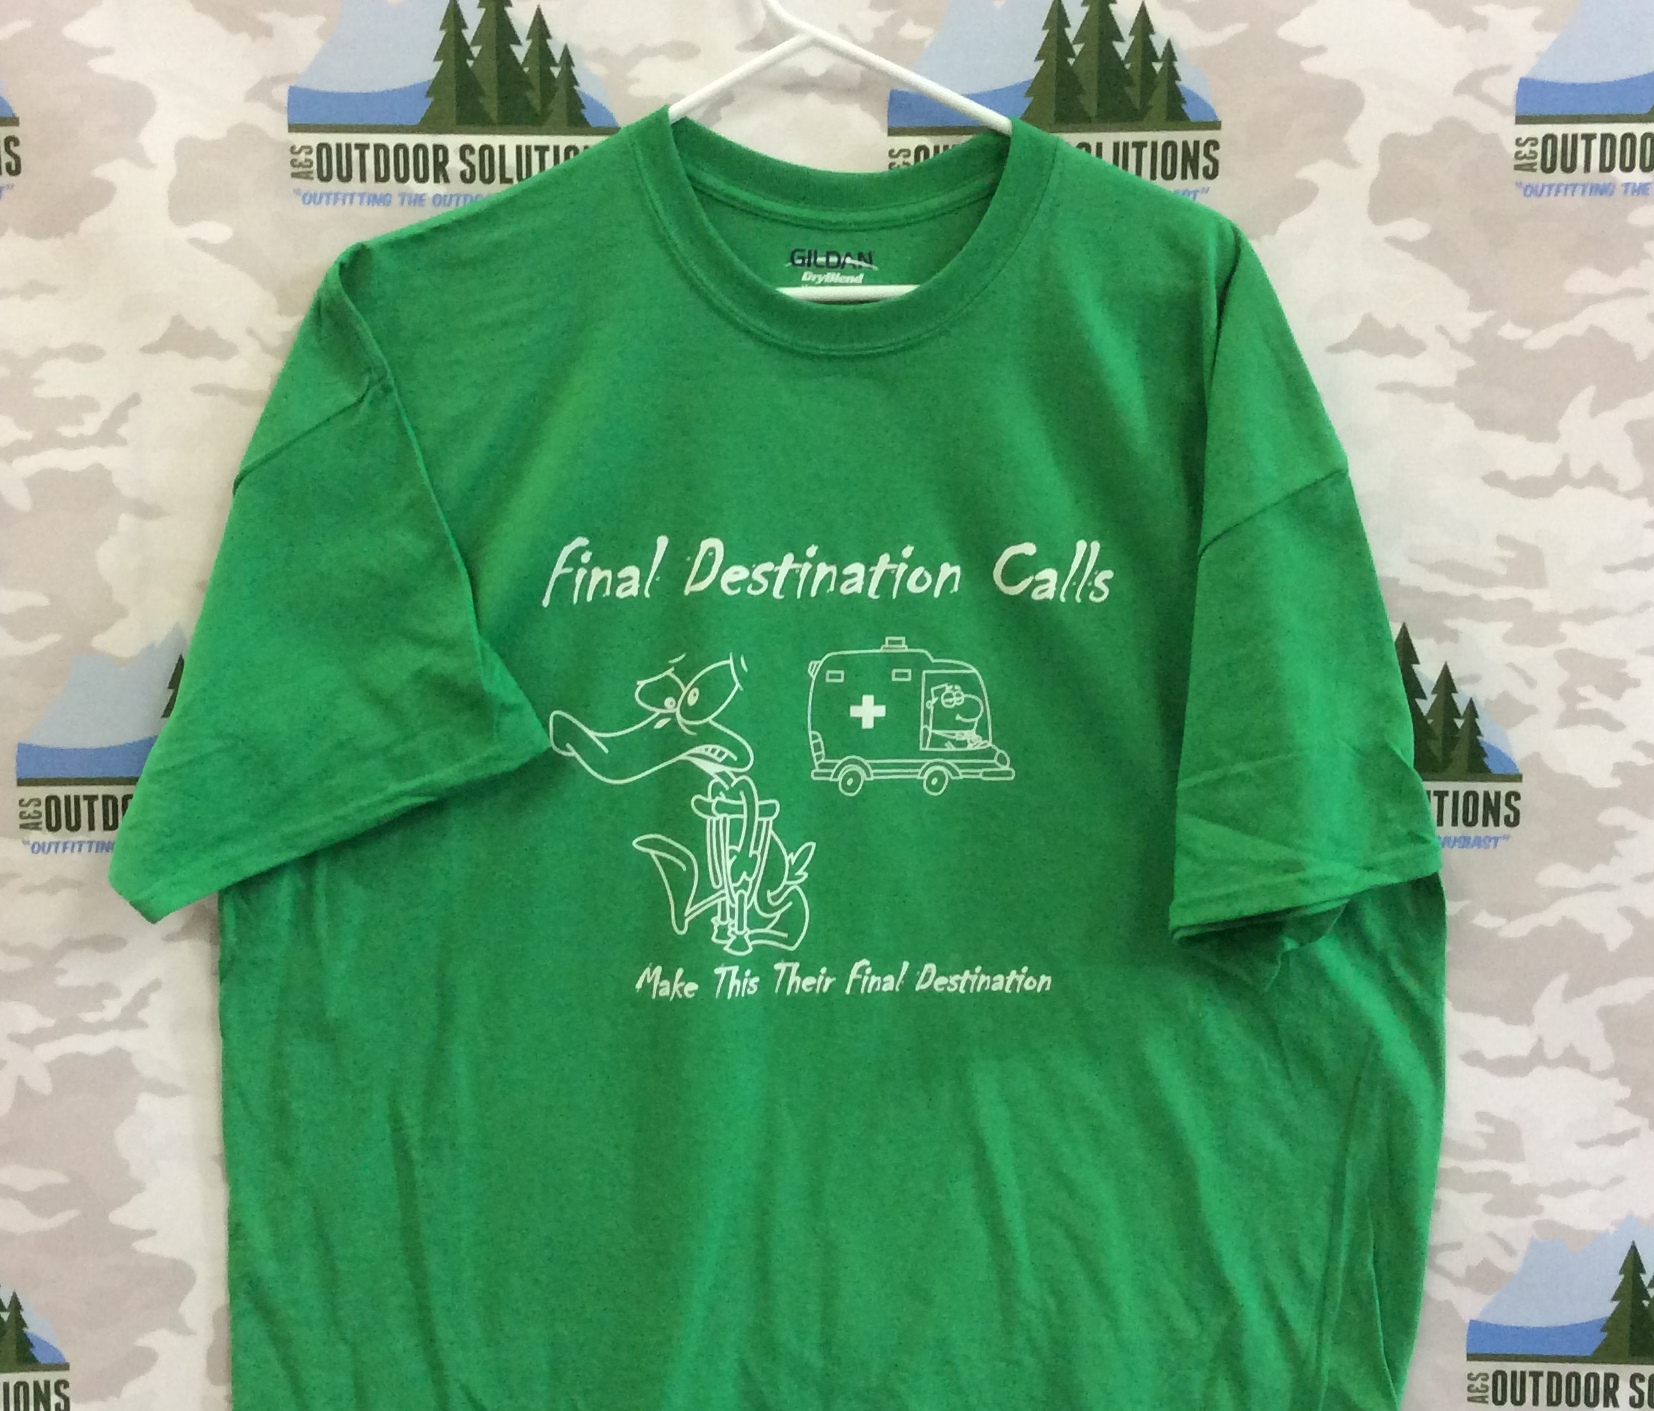 Irish Green Tee with White Logo from Final Destination Calls